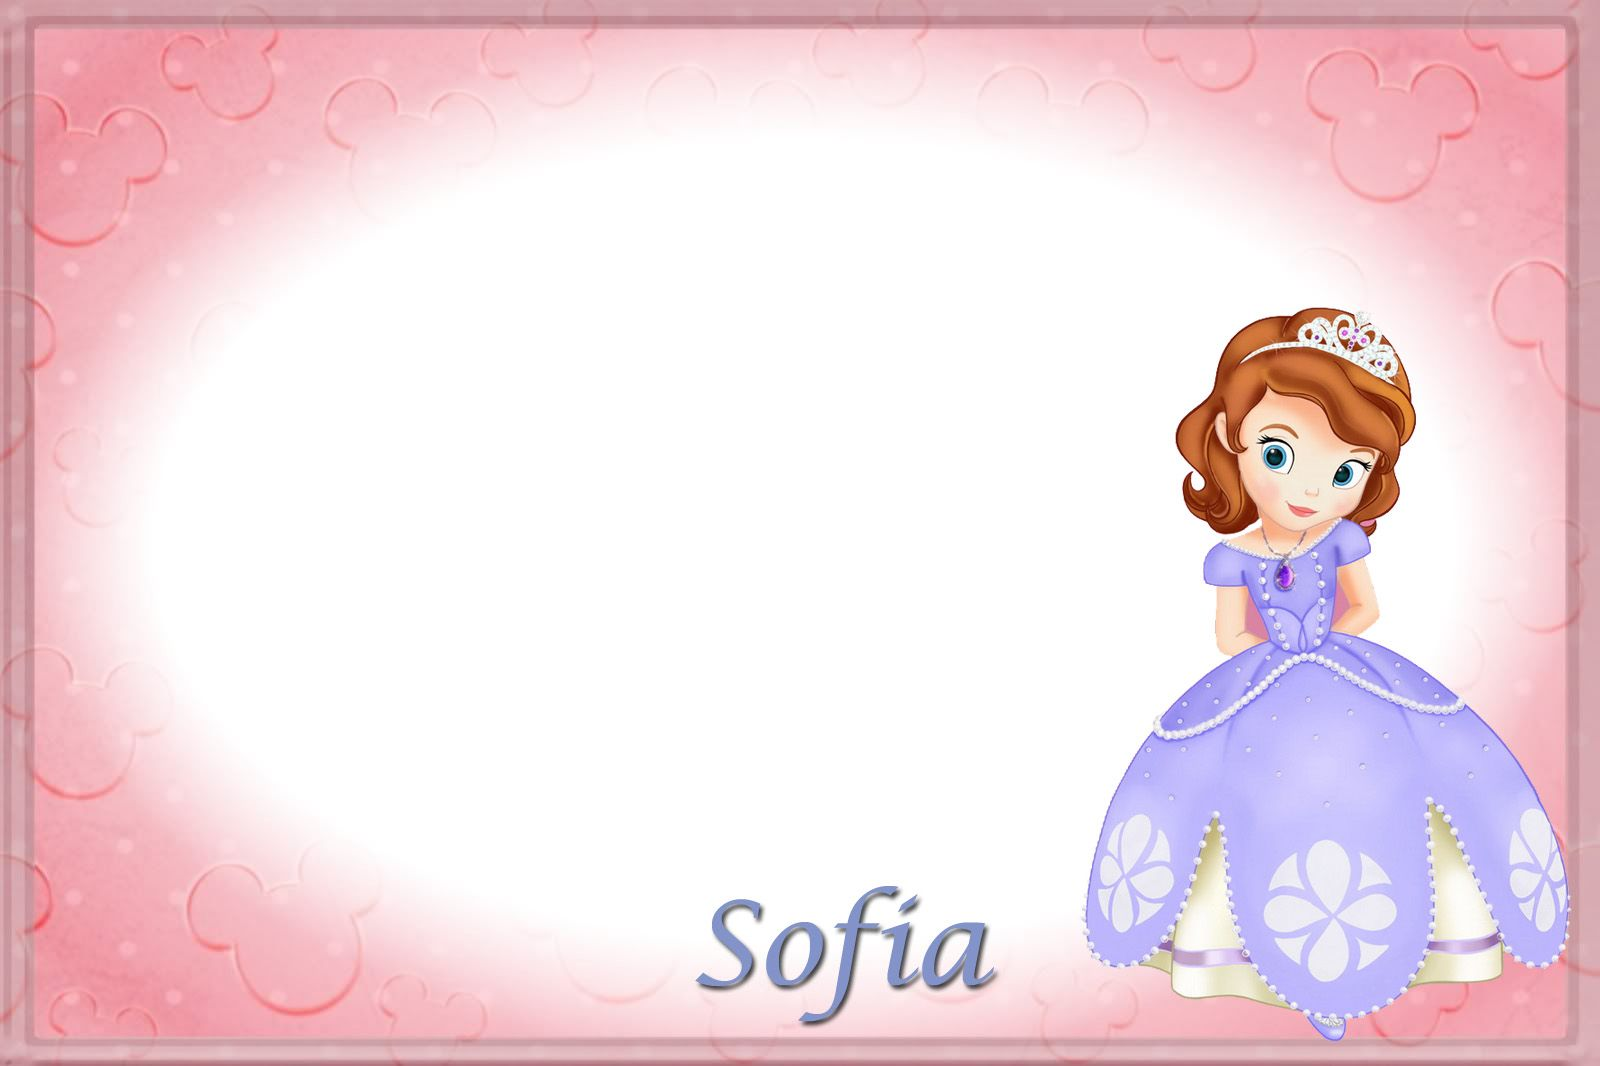 Sofia The First Autograph Page | Disney | Pinterest | Disney ...